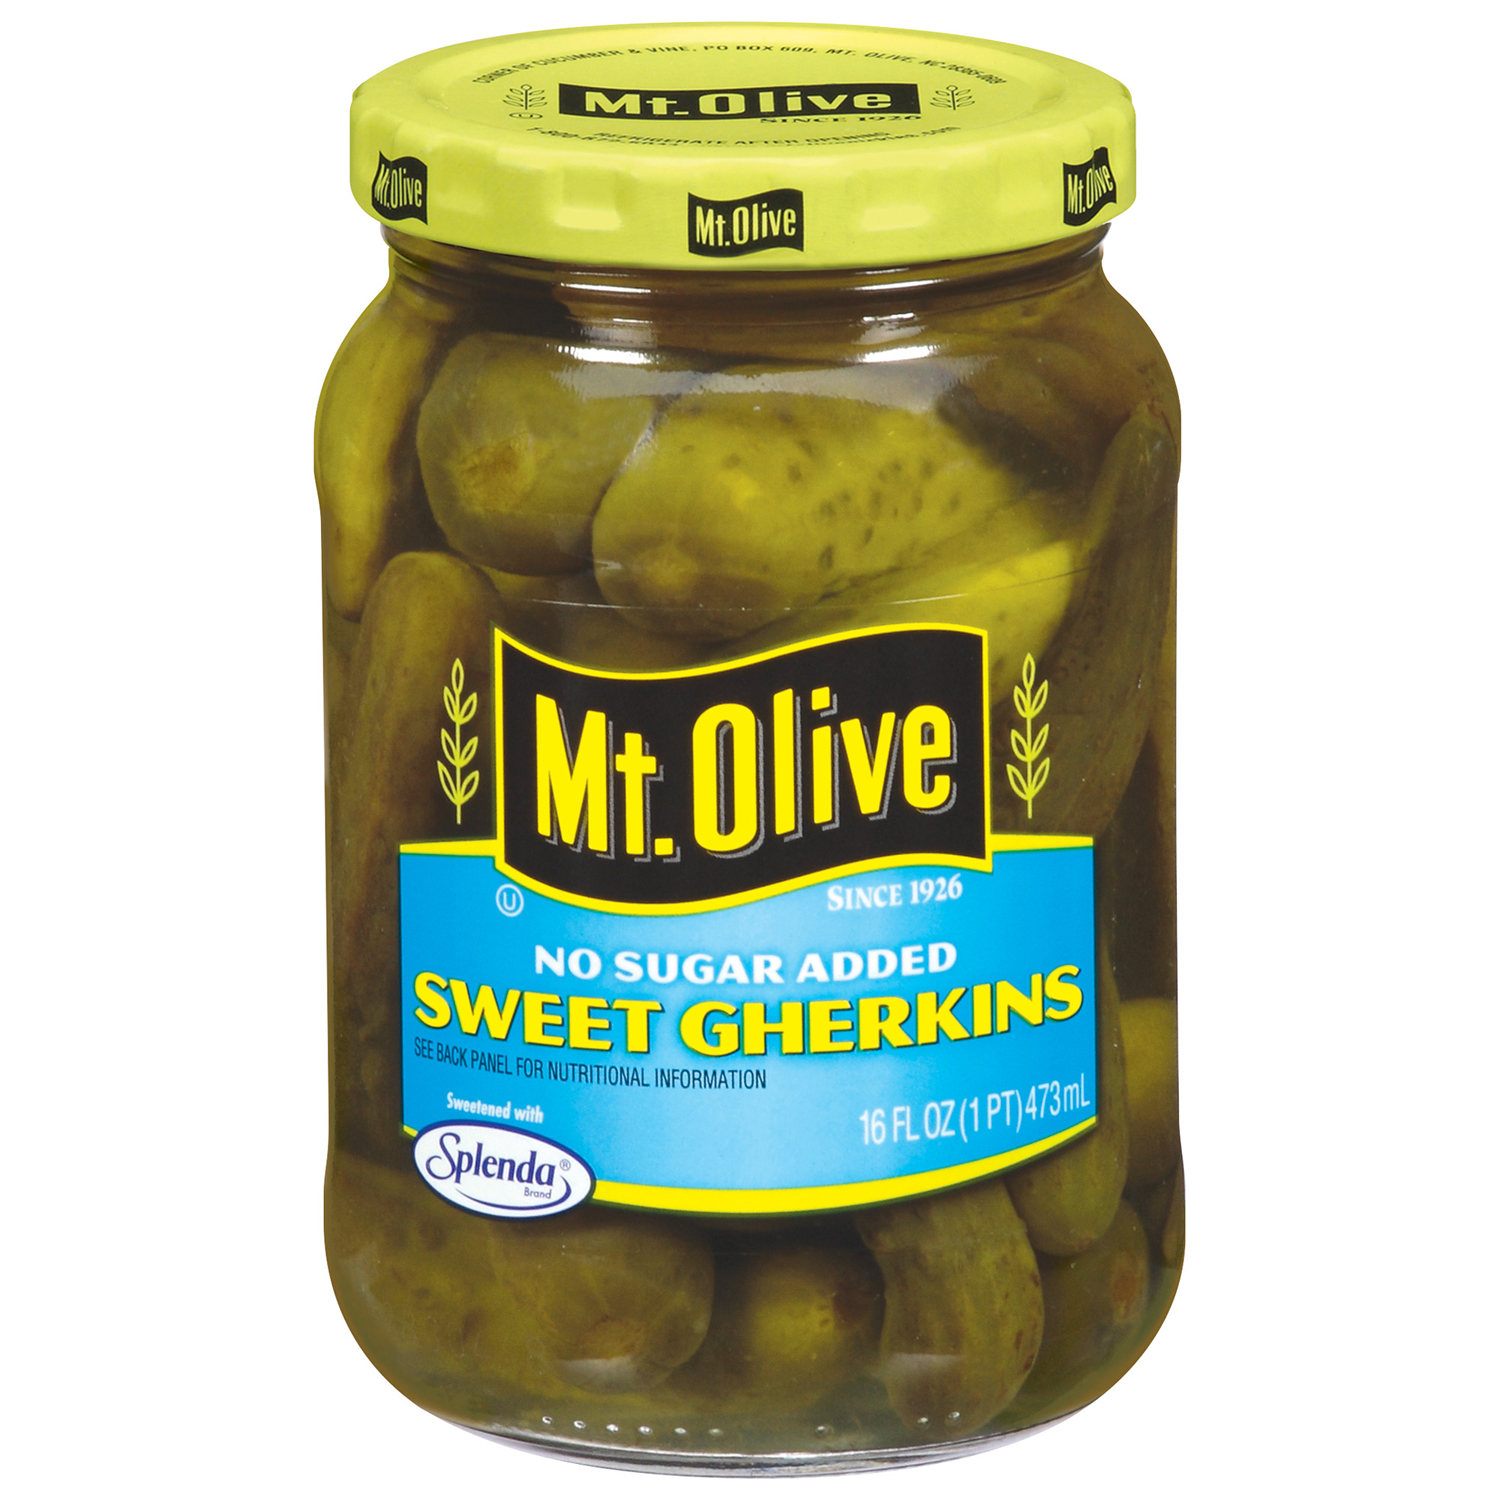 Mt. Olive Sweet Gherkins No Sugar Added Pickles 16 fl. oz. Jar